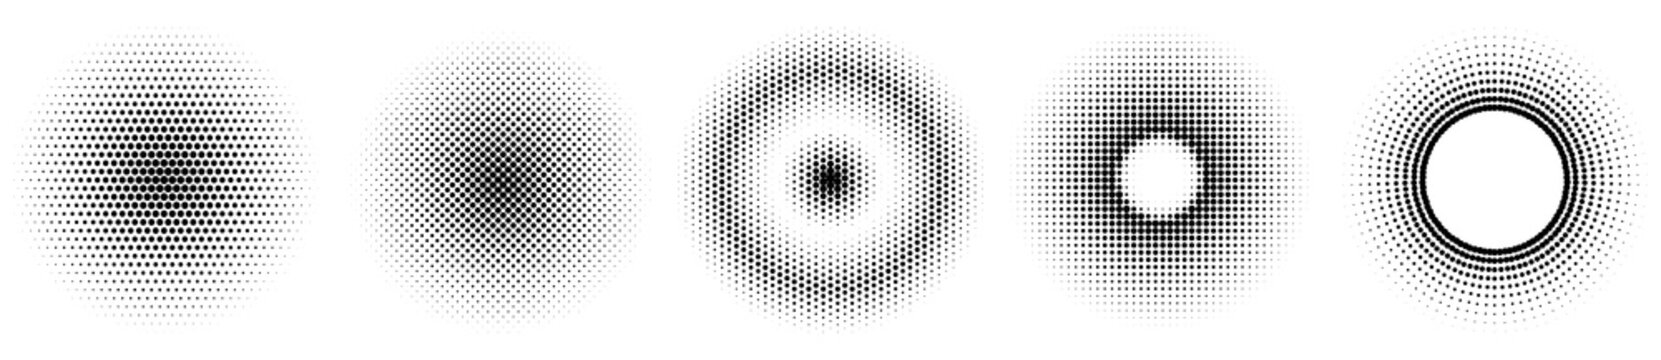 Set of simple halftones. Black gradient circles of dots. Dotwork. Vector illustration.